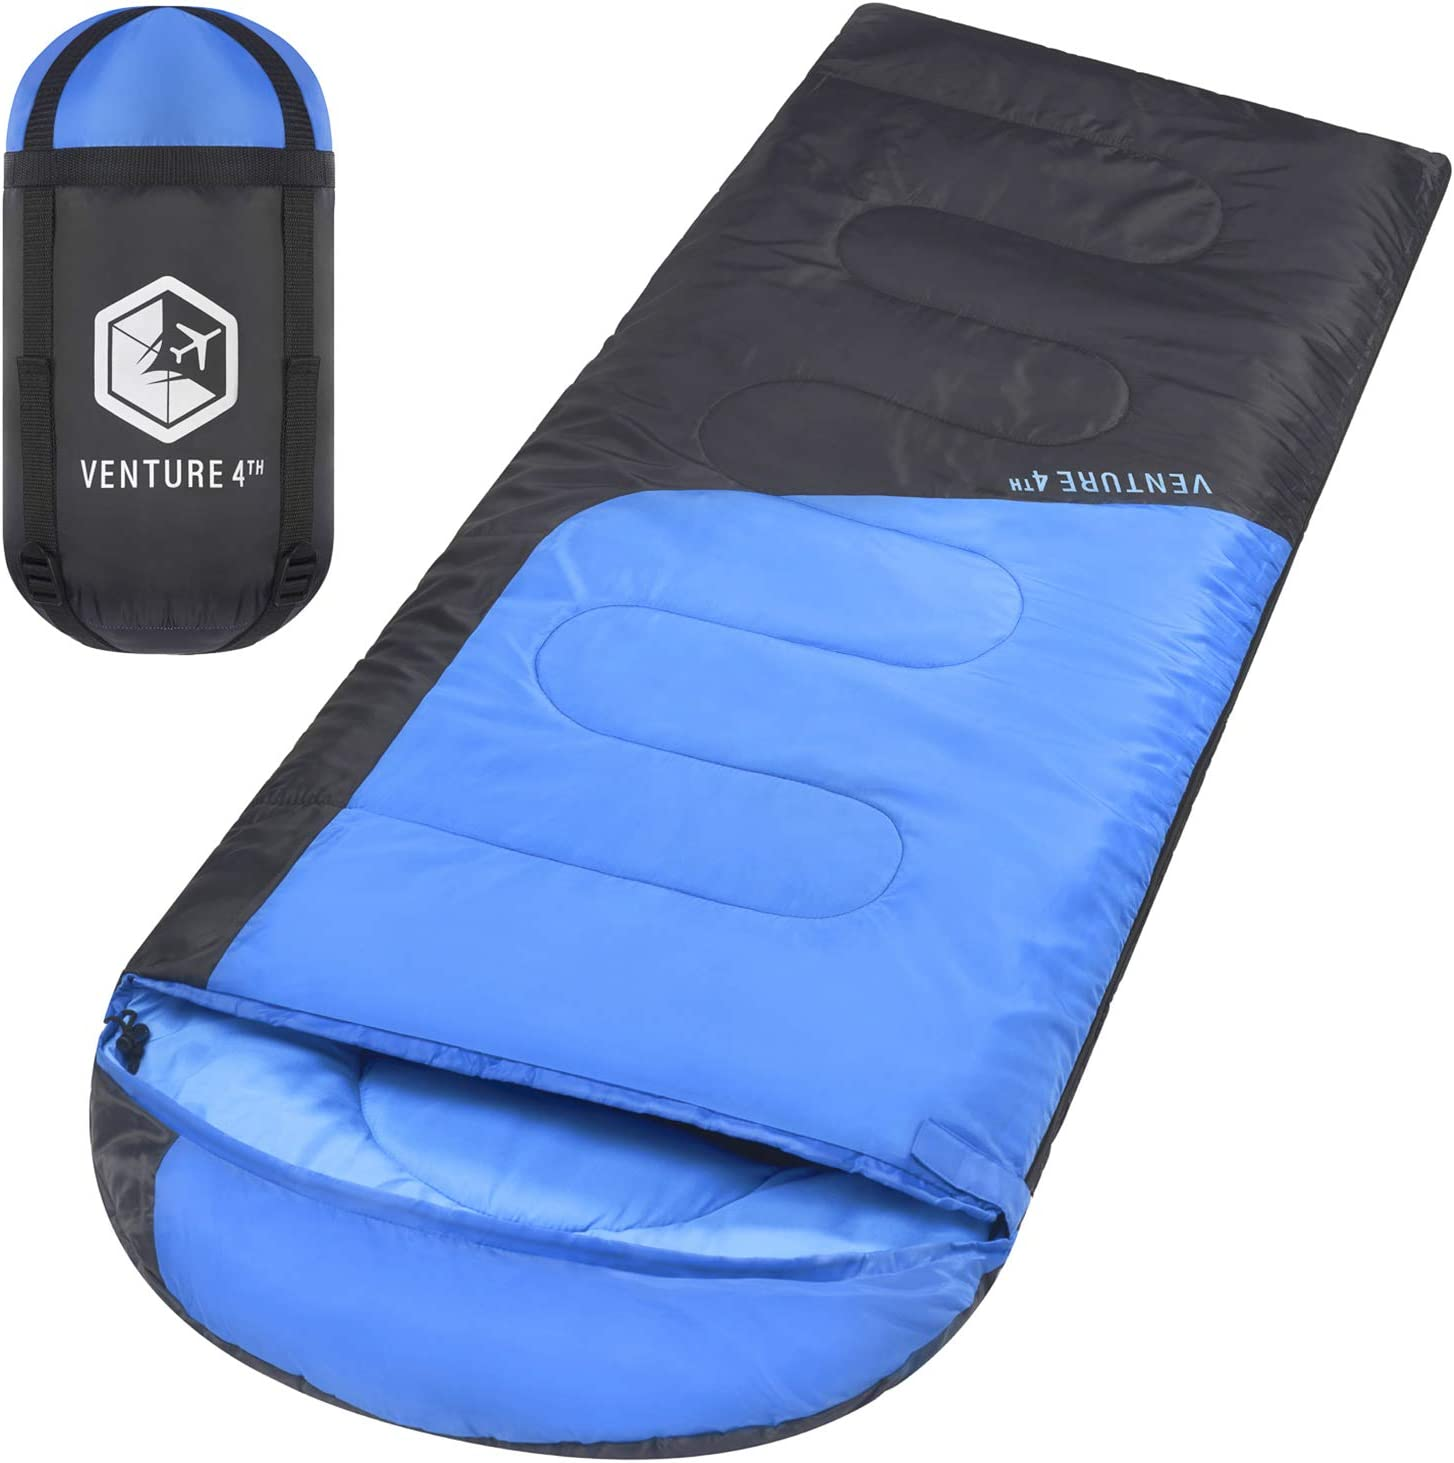 Backpacking Sleeping Bag – Lightweight, Comfortable, Water Resistant, 3 Season Sleeping Bag for Adults & Kids – Ideal for Hiking, Camping & Outdoor Adventures - Regular Size